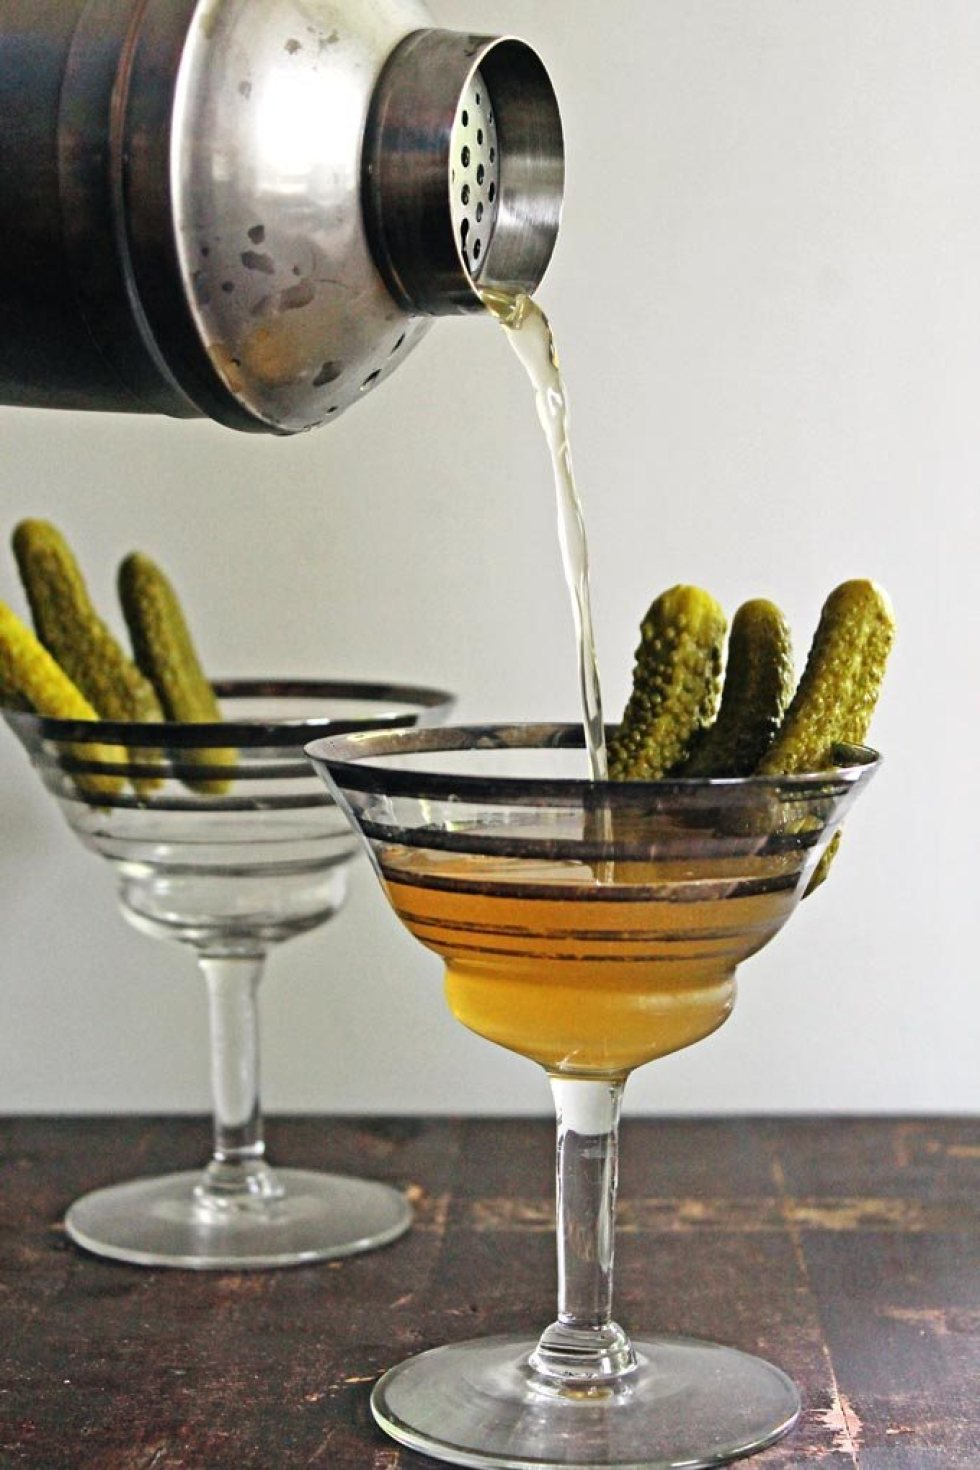 Love a hint of spice in your drink? This martini is a pickle infused drink making it herby and peppery!